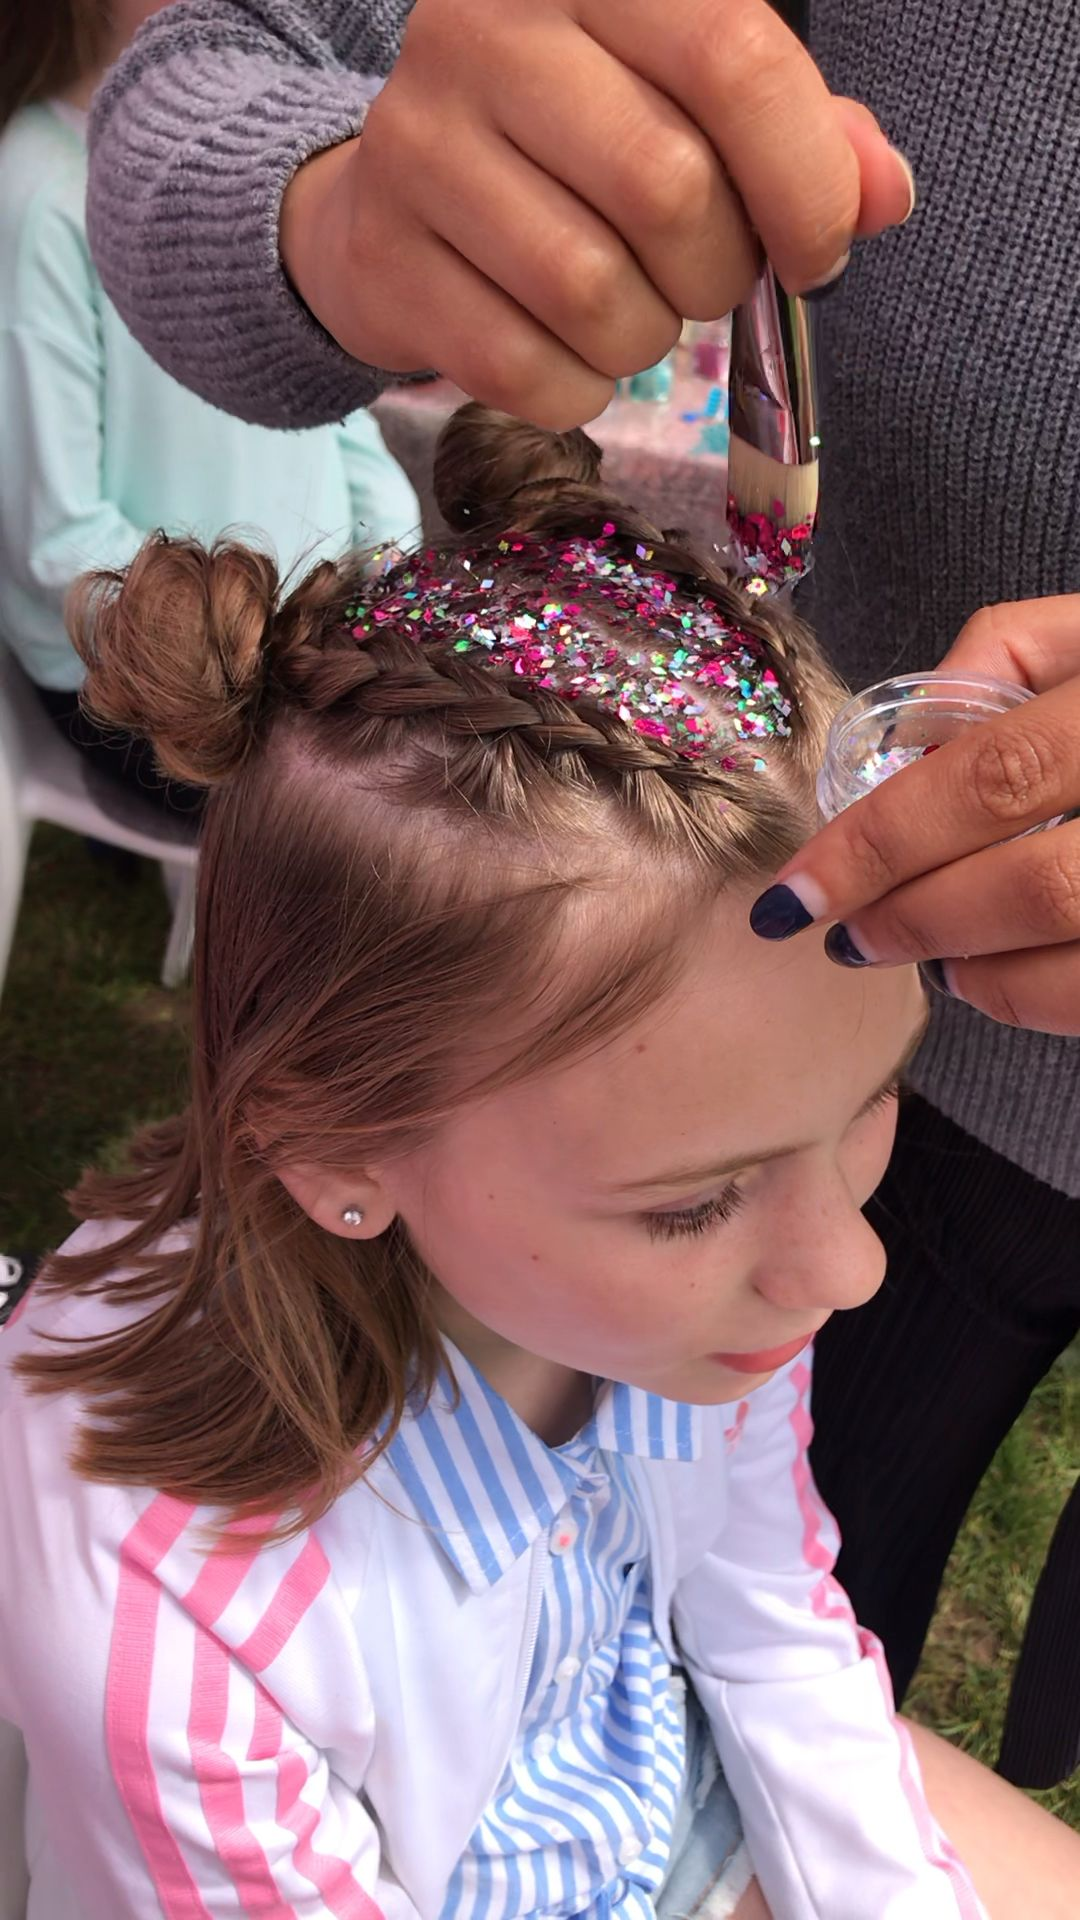 This Festival Hair Look Is Amazing! 2 Br - Hair Beauty